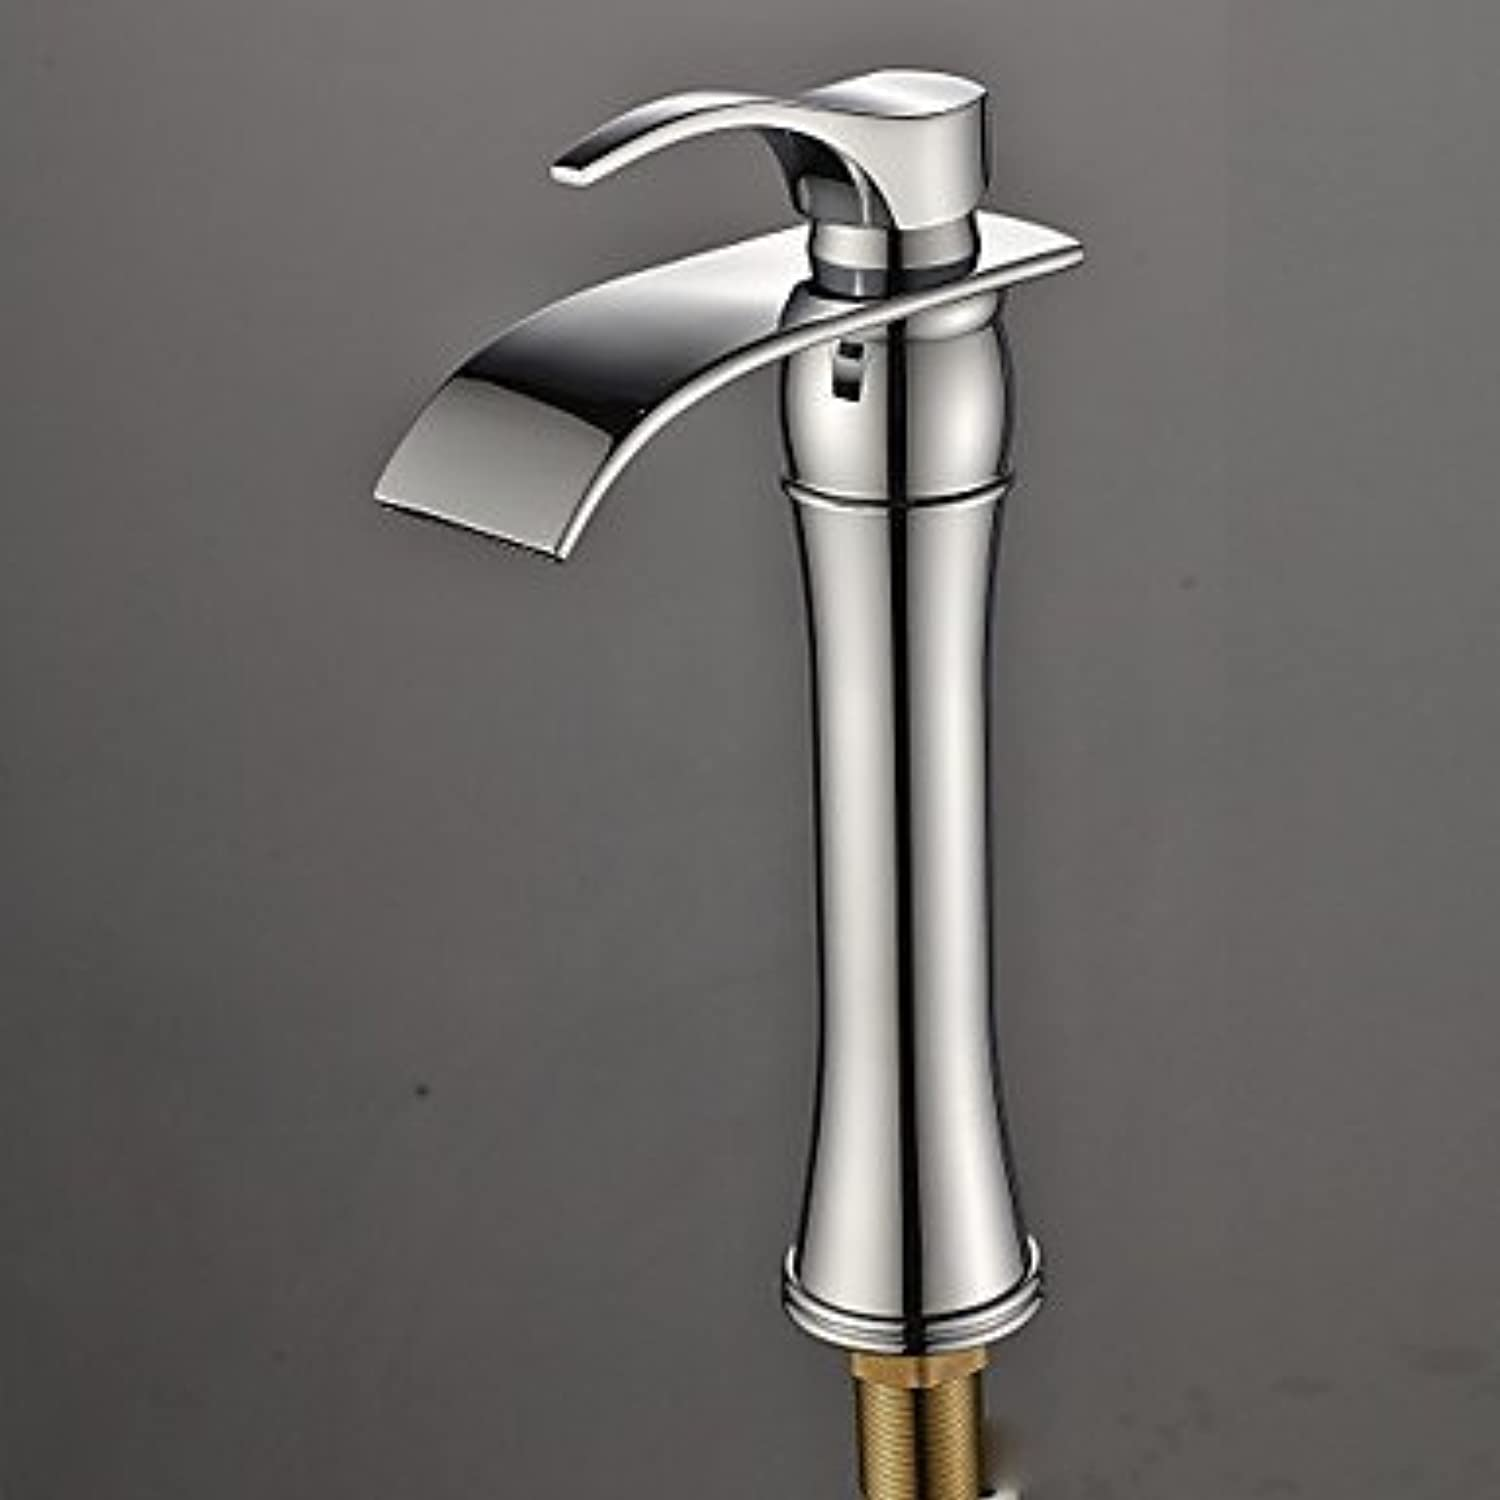 GDS Faucet£? Copper chrome contemporary waterfall single handle sink faucet